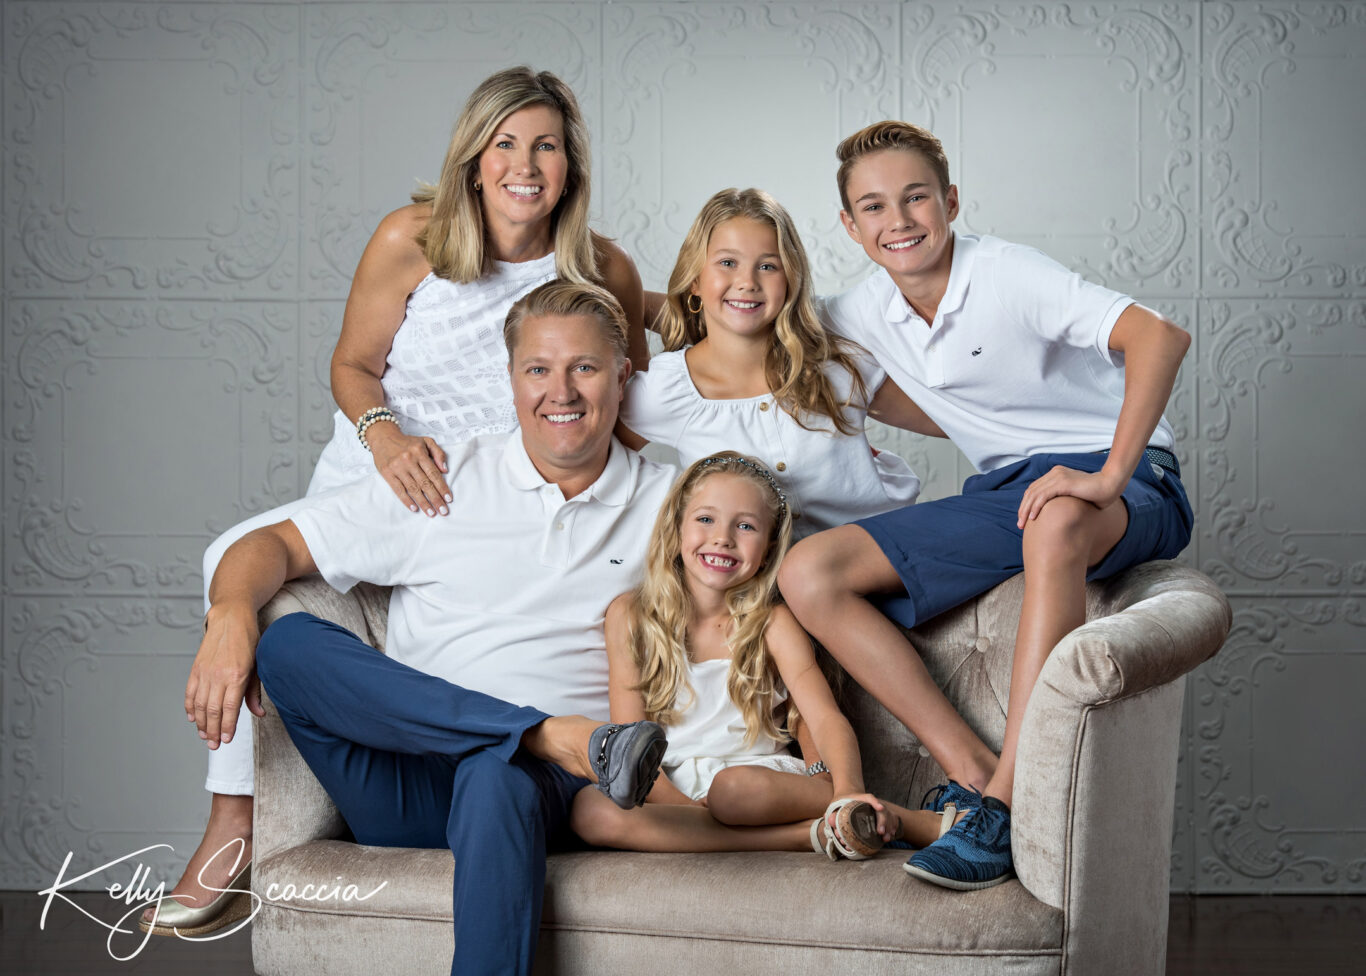 Studio family portrait of five, blonde hair, blue eyes, all in white and dad and son in blue shorts and pants sitting on a couch